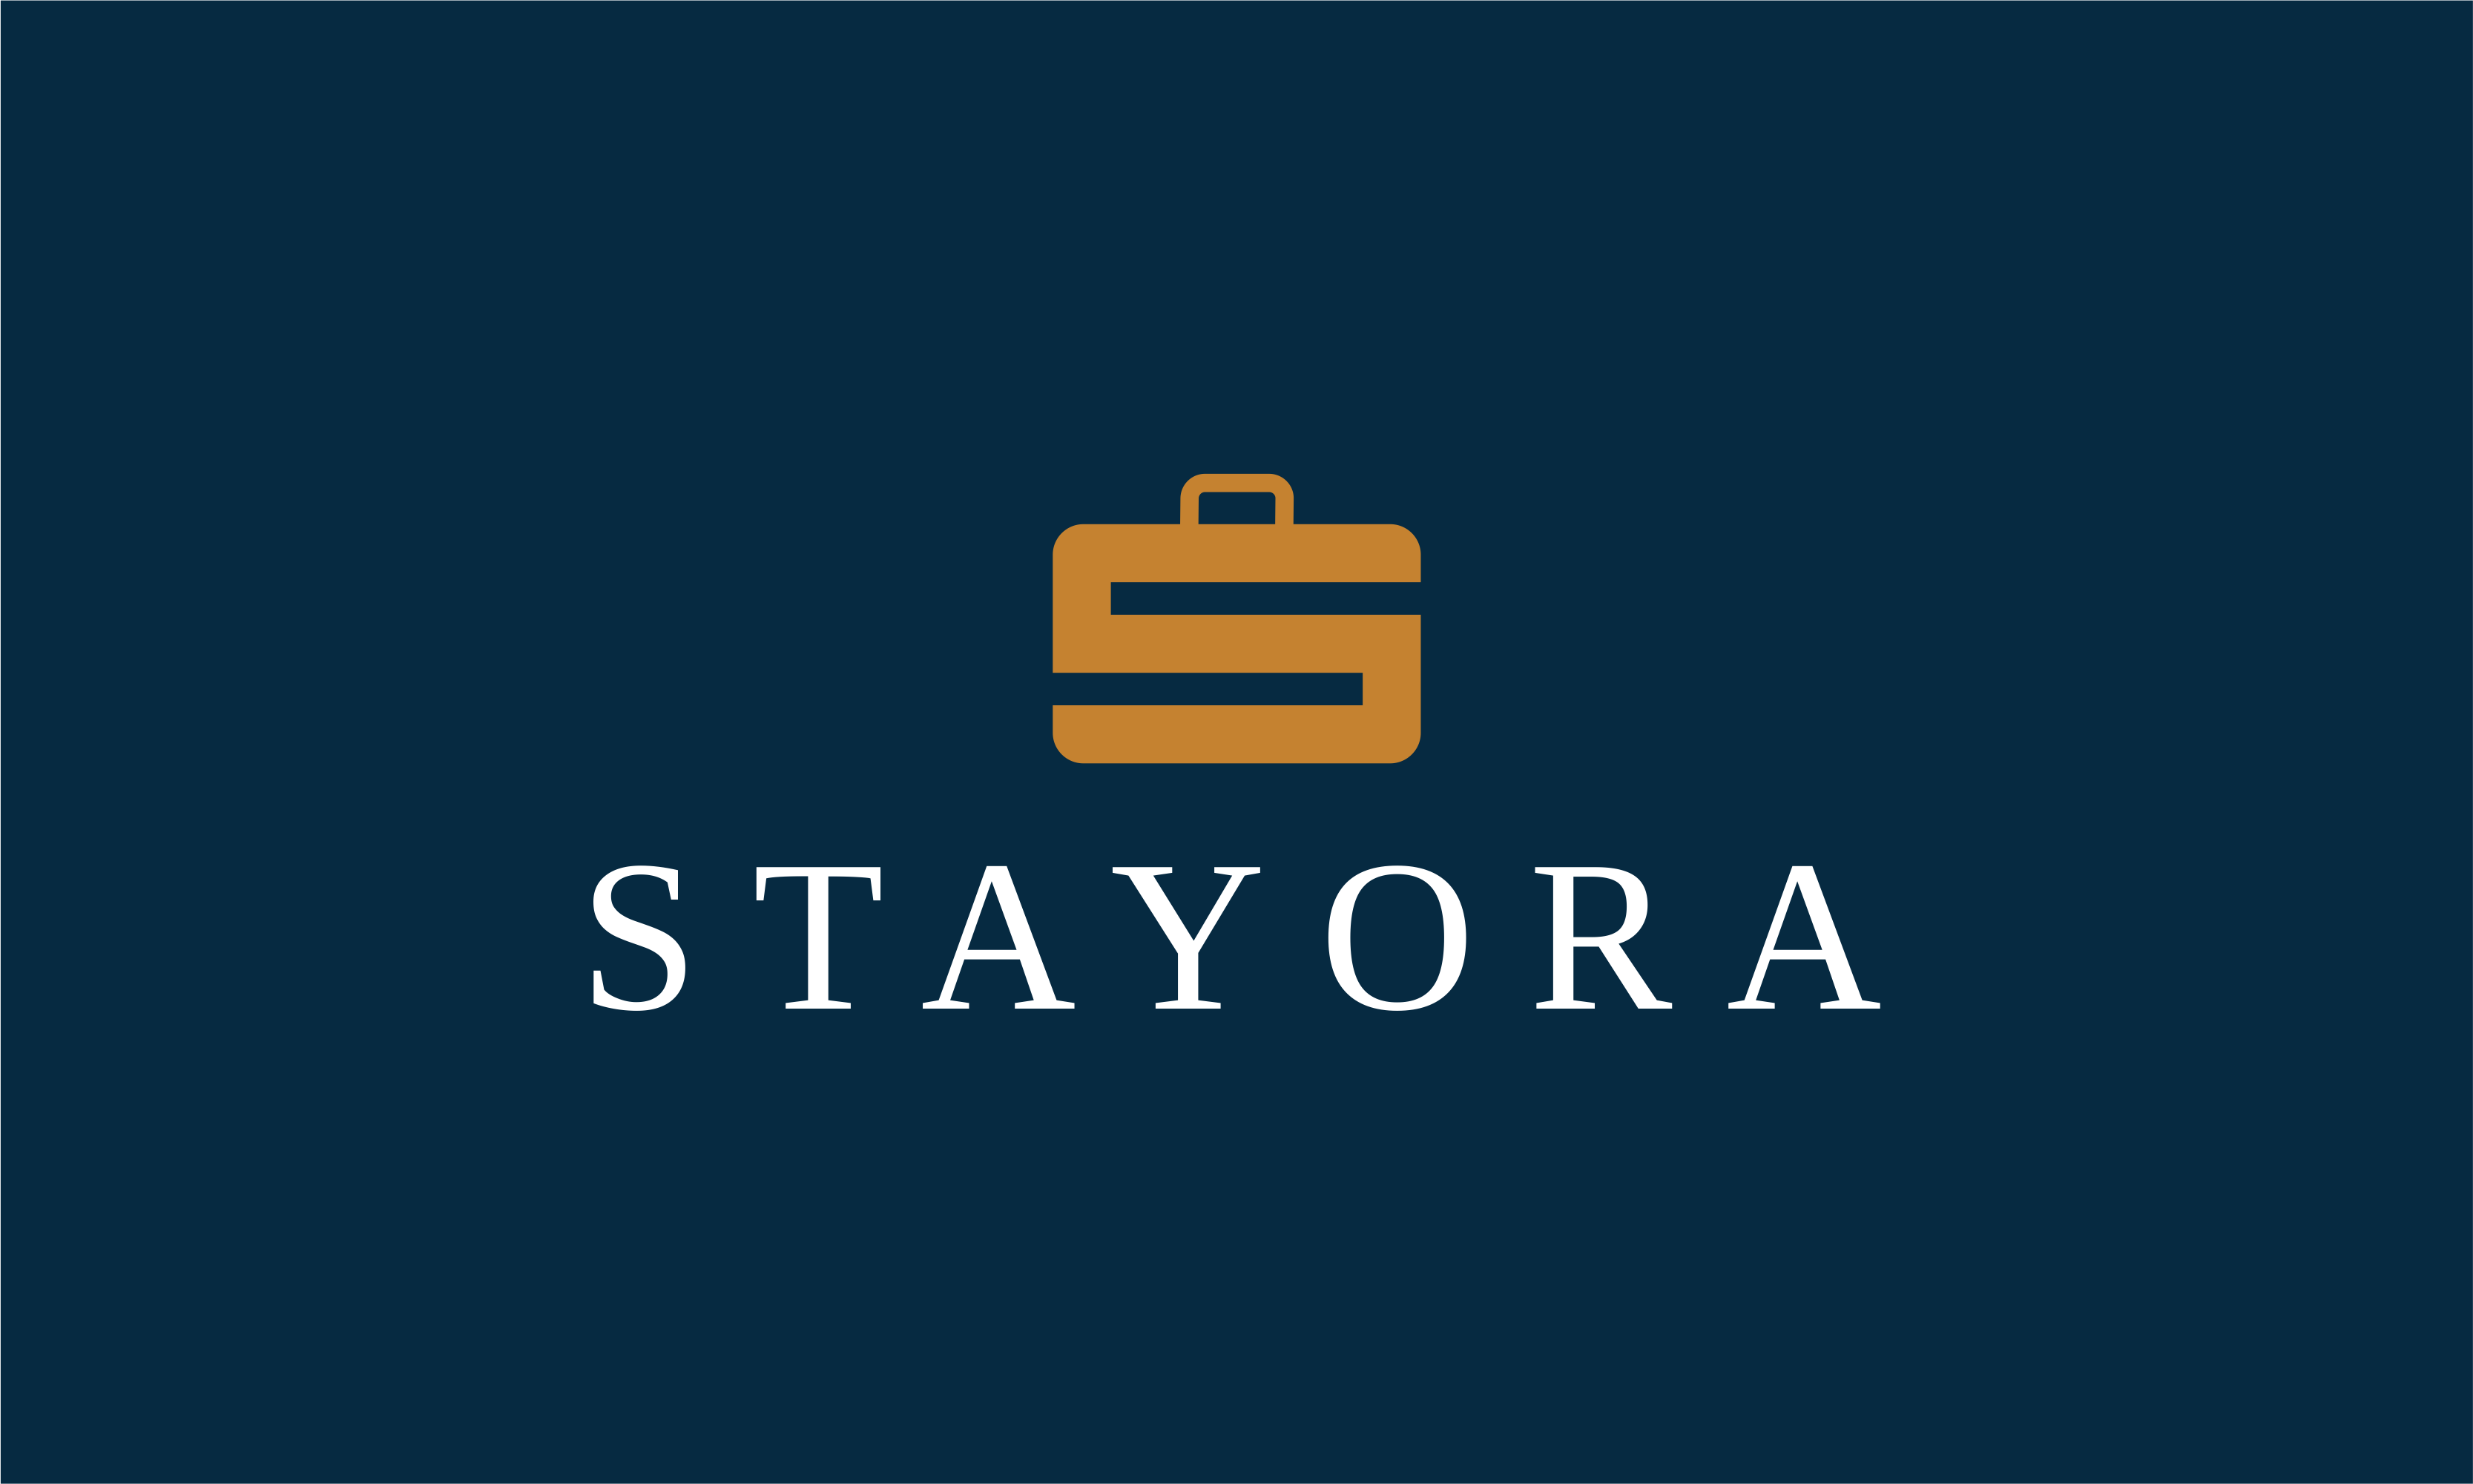 Stayora - Healthcare business name for sale